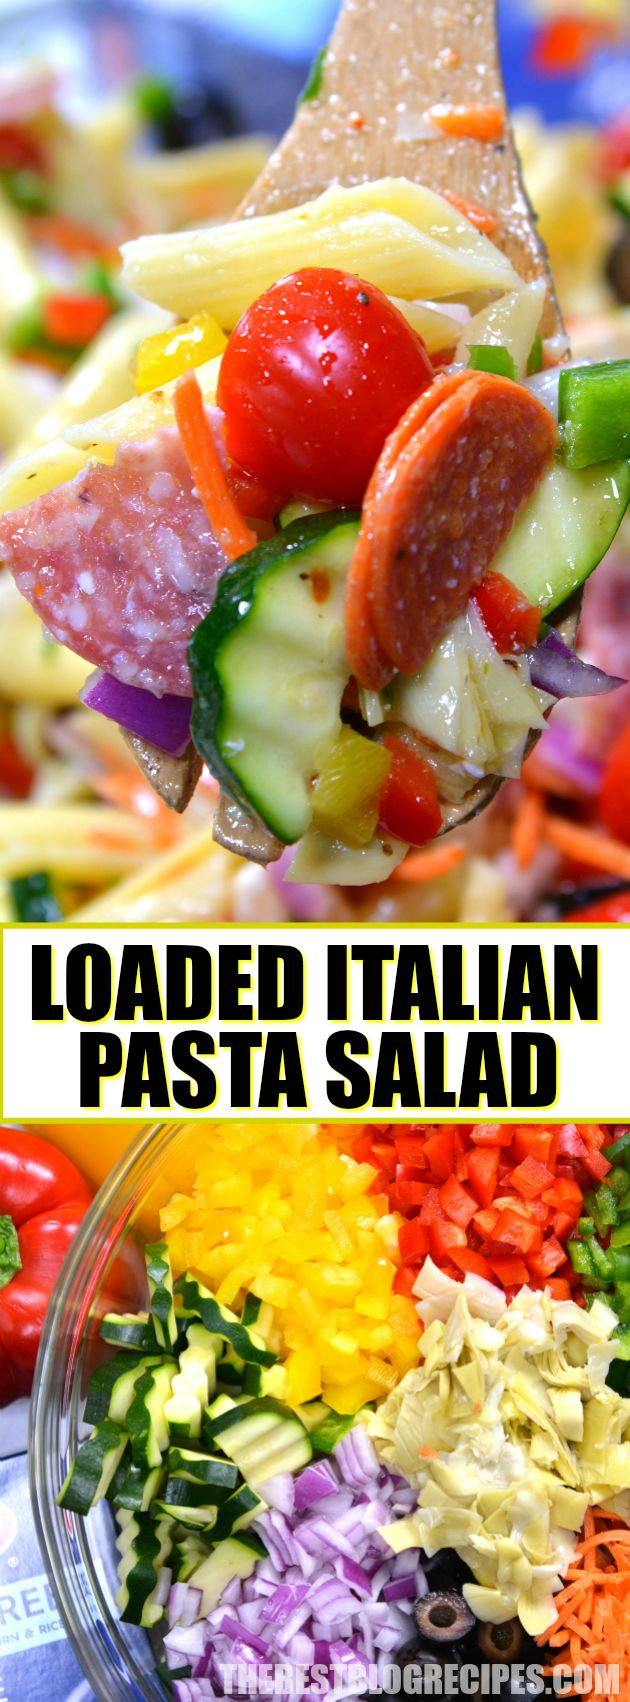 This Loaded Italian Pasta Salad From The Best Blog Recipes Is A Classic Pasta Salad That